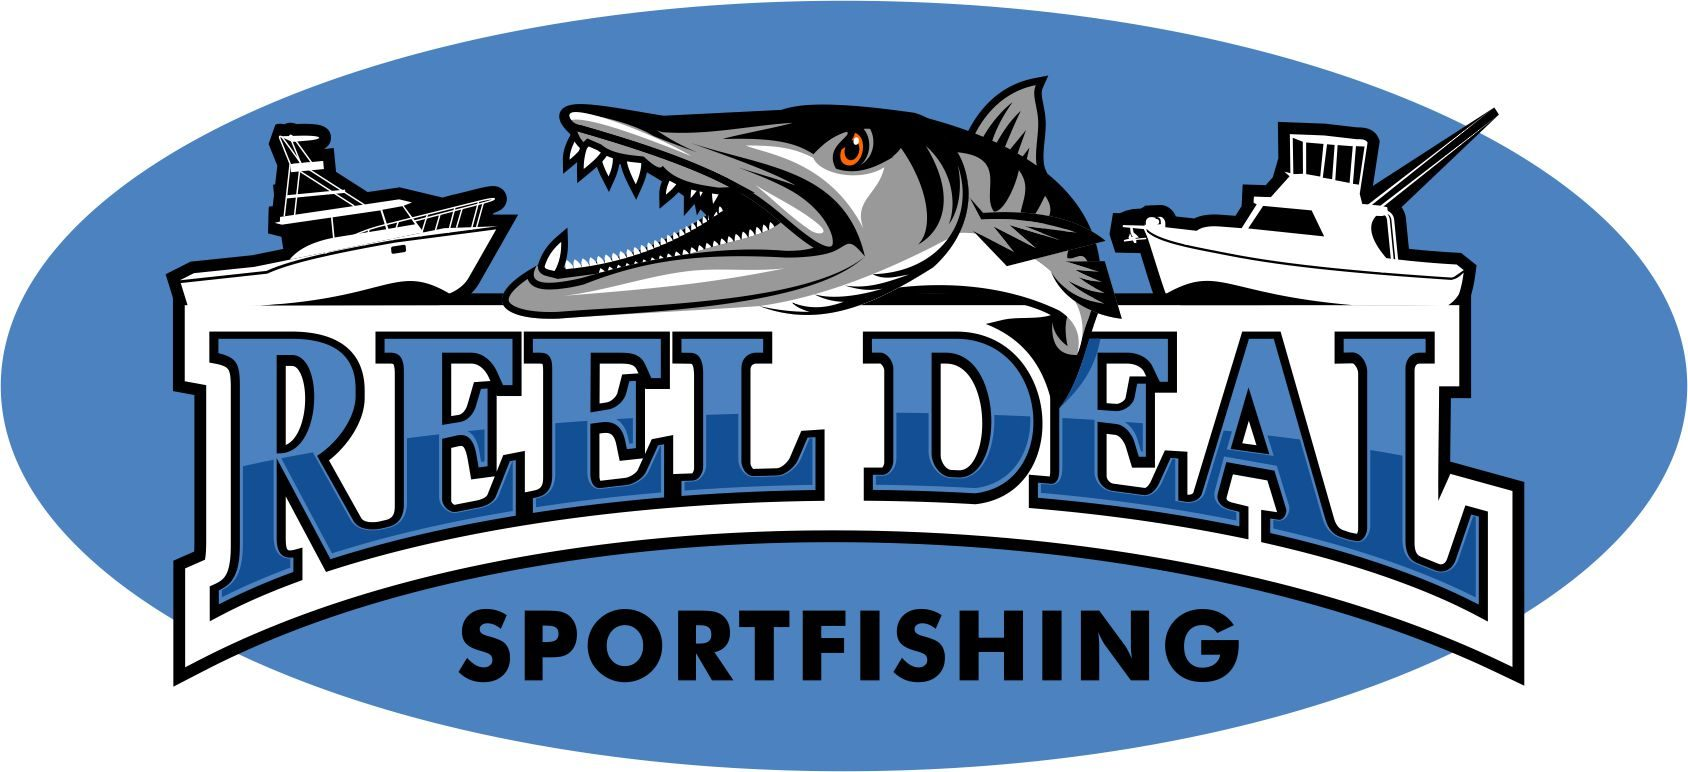 REEL DEAL SPORTFISHING – Clearwater Fishing Charters